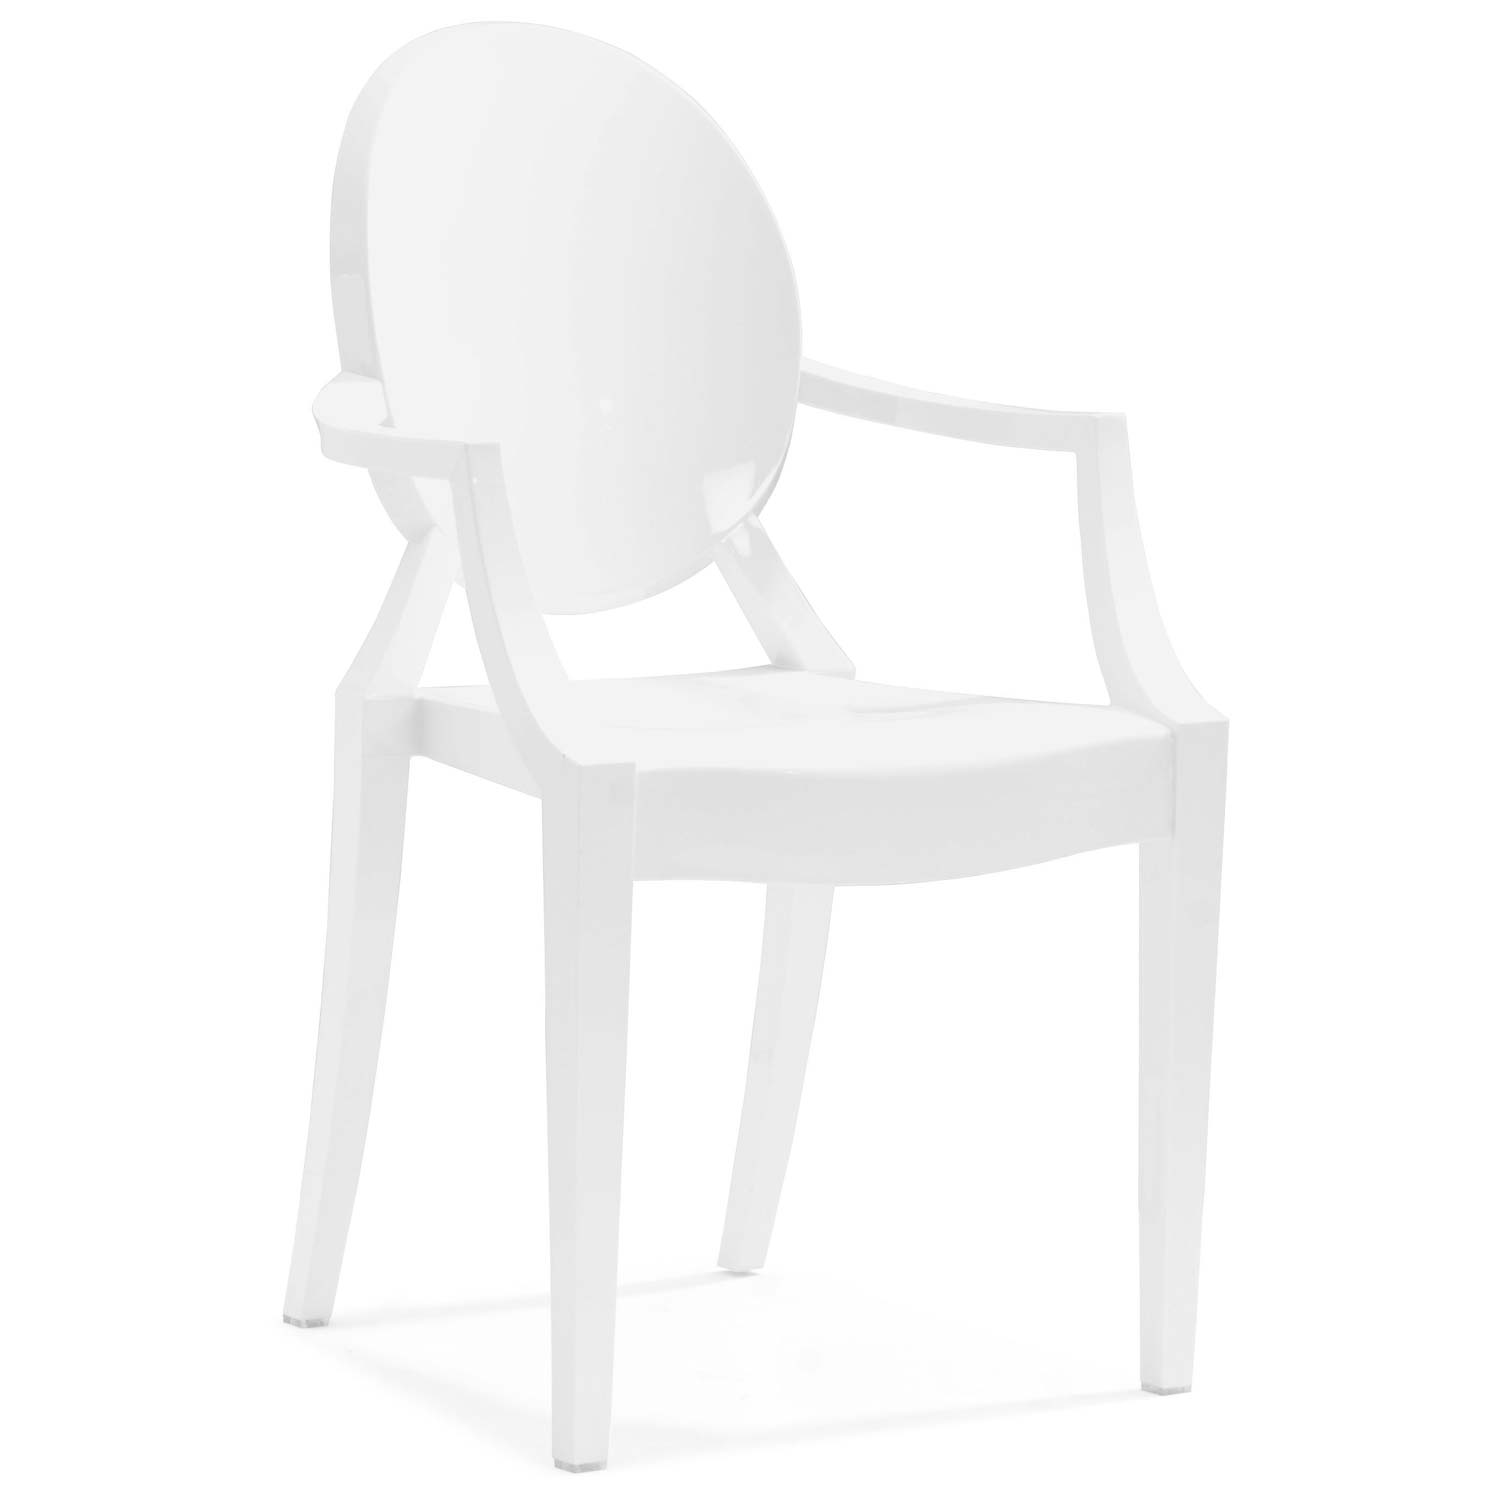 Anime Ghost Style Dining Chair